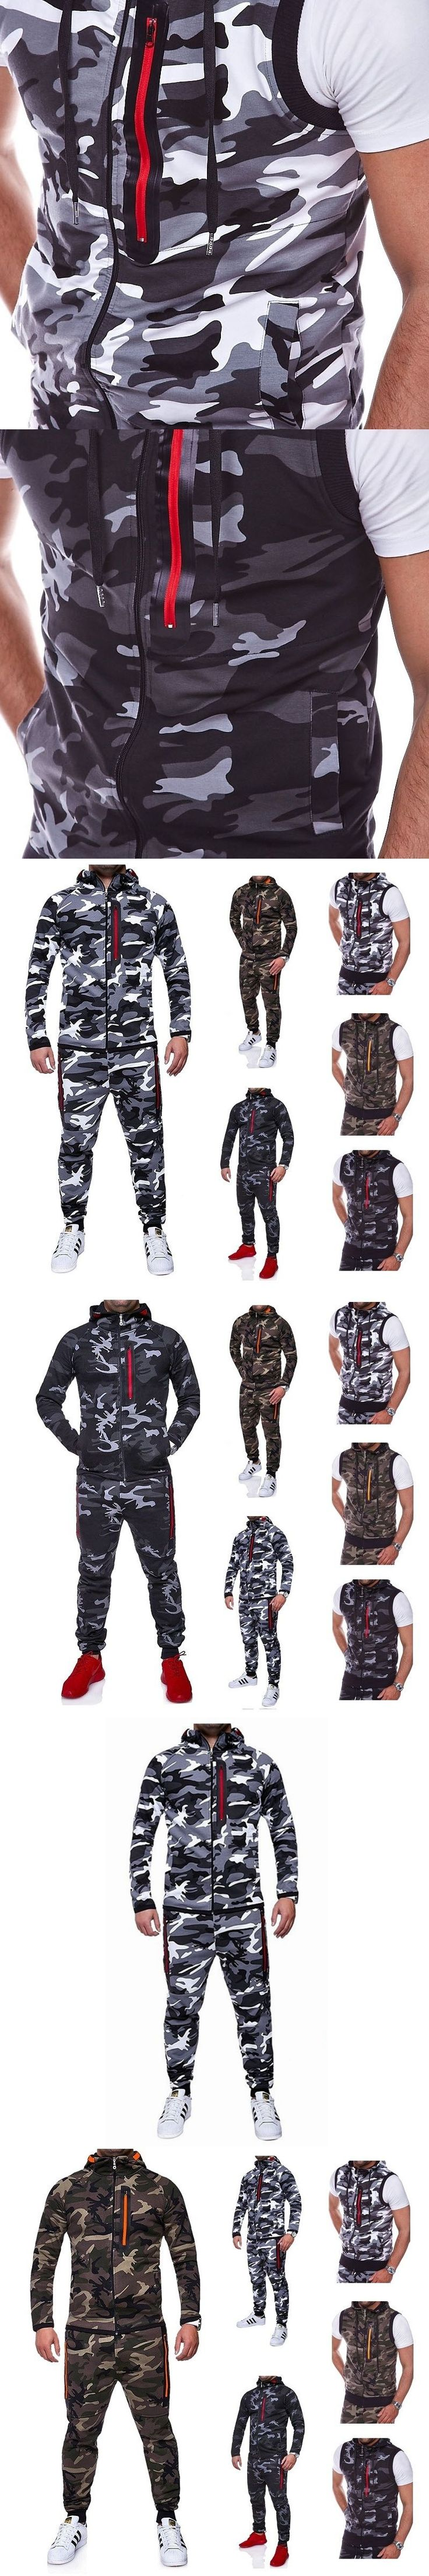 New Fashion Men's Sets long-Sleeved Sweatershirts+pants+Zipper Vest Men Three-piece suit Casual Camouflage Male Sportwear Suits #menssuitscasual